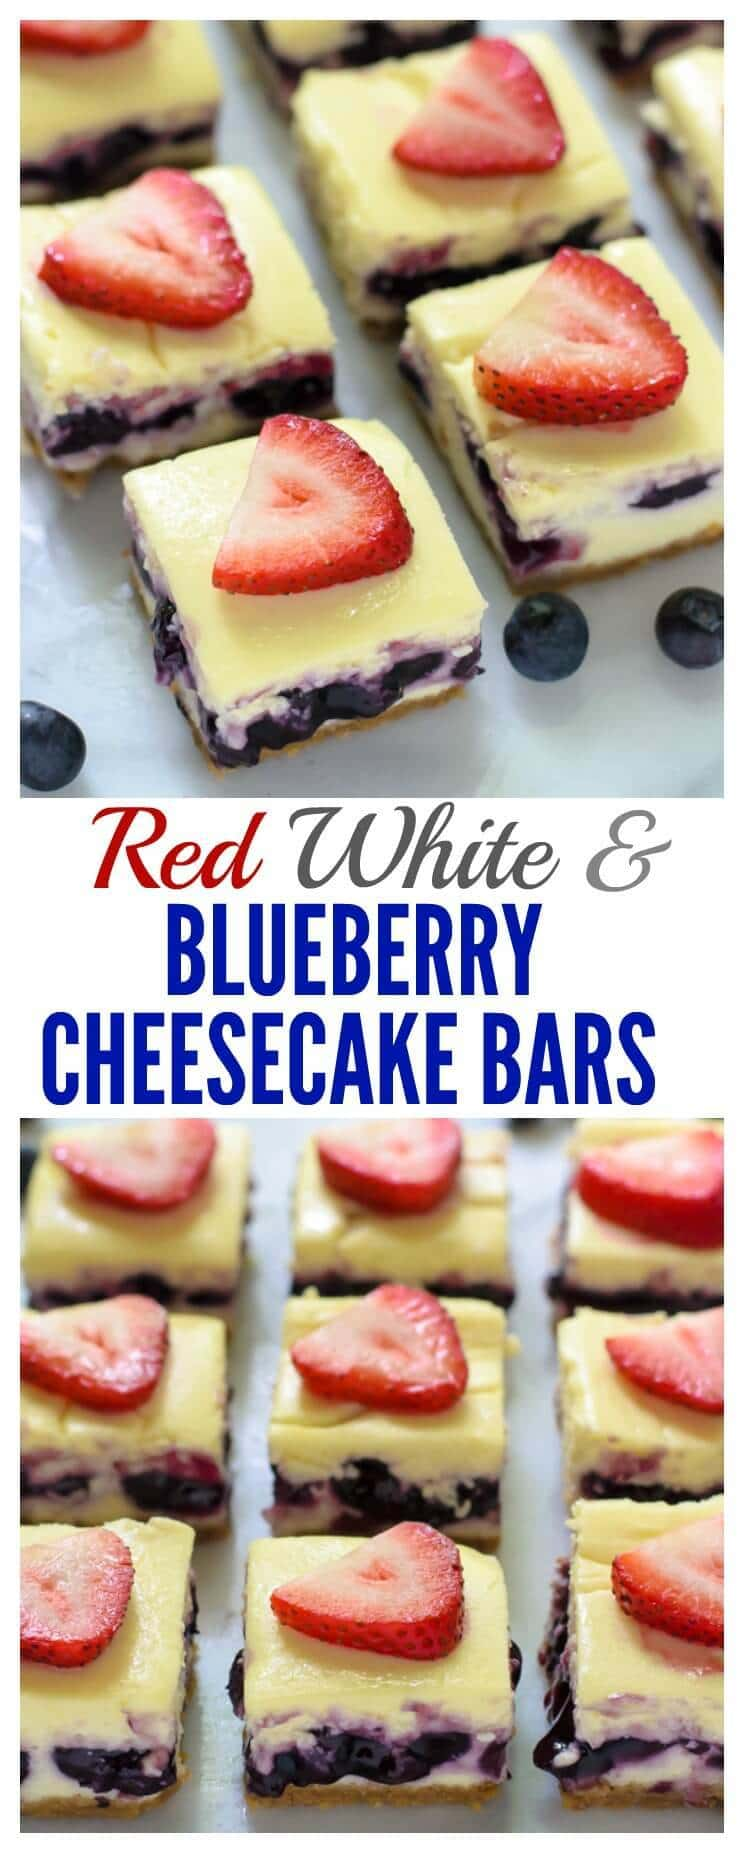 Red White and Blueberry Cheesecake Bars. The perfect red white and blue dessert for the Fourth of July!